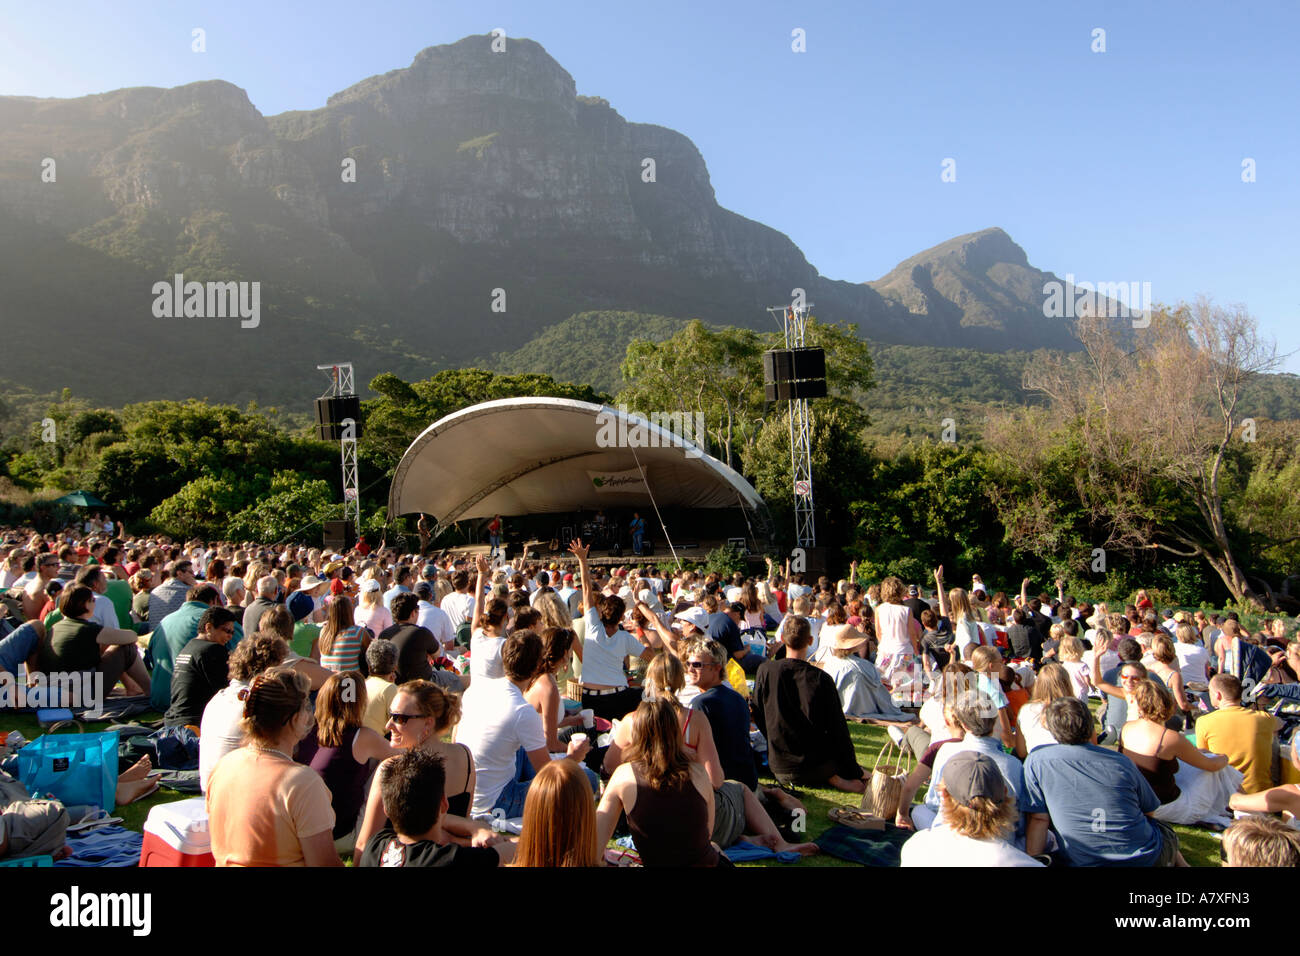 Crowds watching Karen Zoid perform at the Kirstenbosch summer concerts amphitheatre in Cape Town - Stock Image